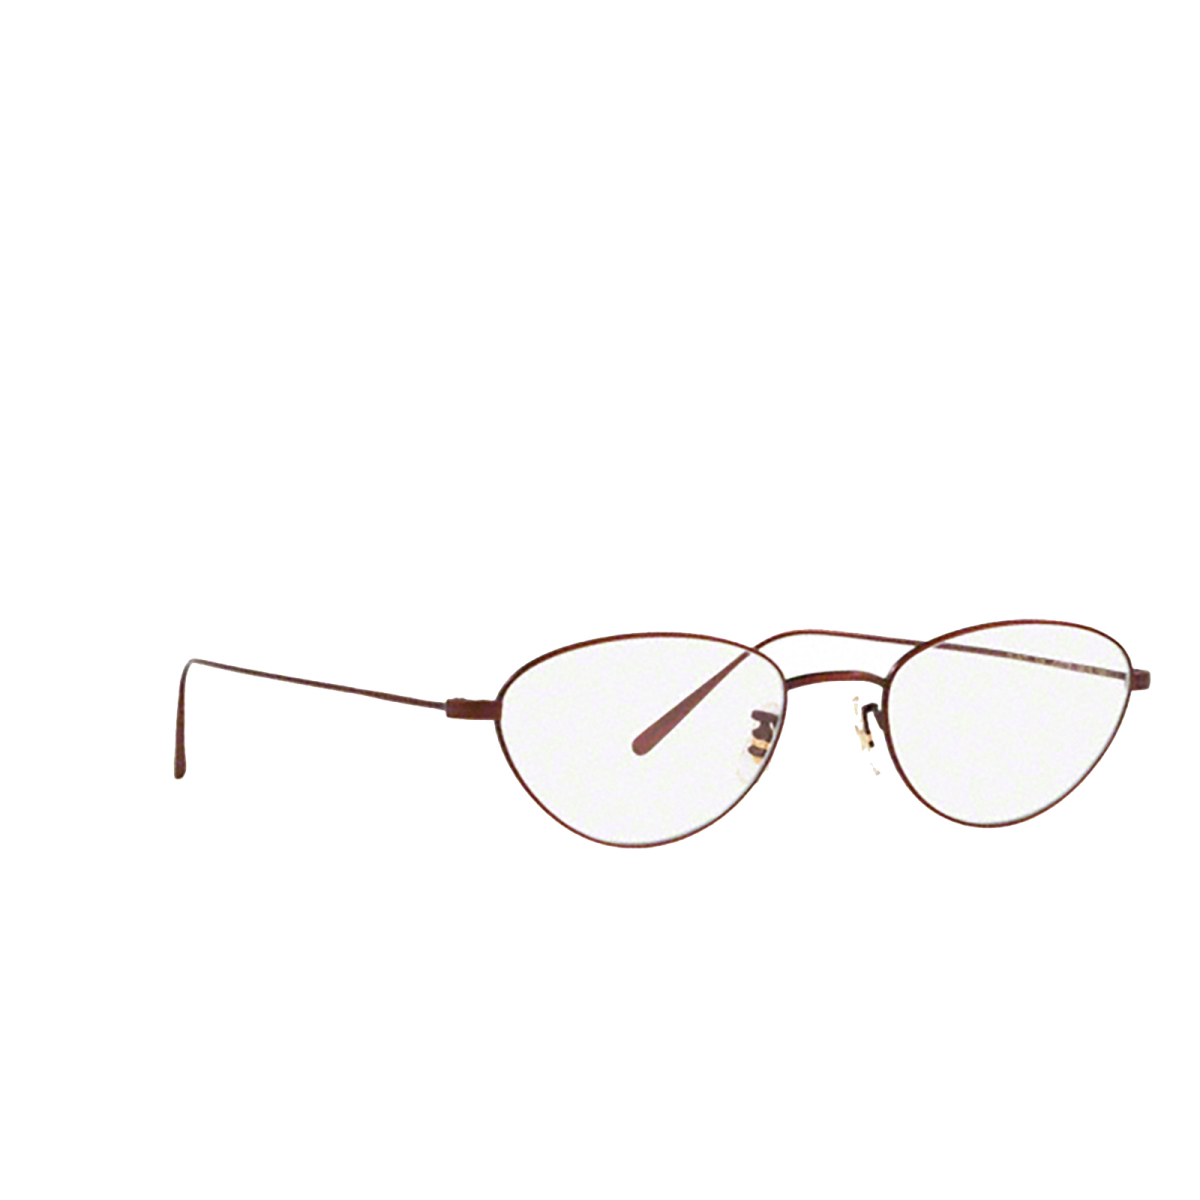 Oliver Peoples® Oval Eyeglasses: Jozette OV1247T color 5294 - three-quarters view.